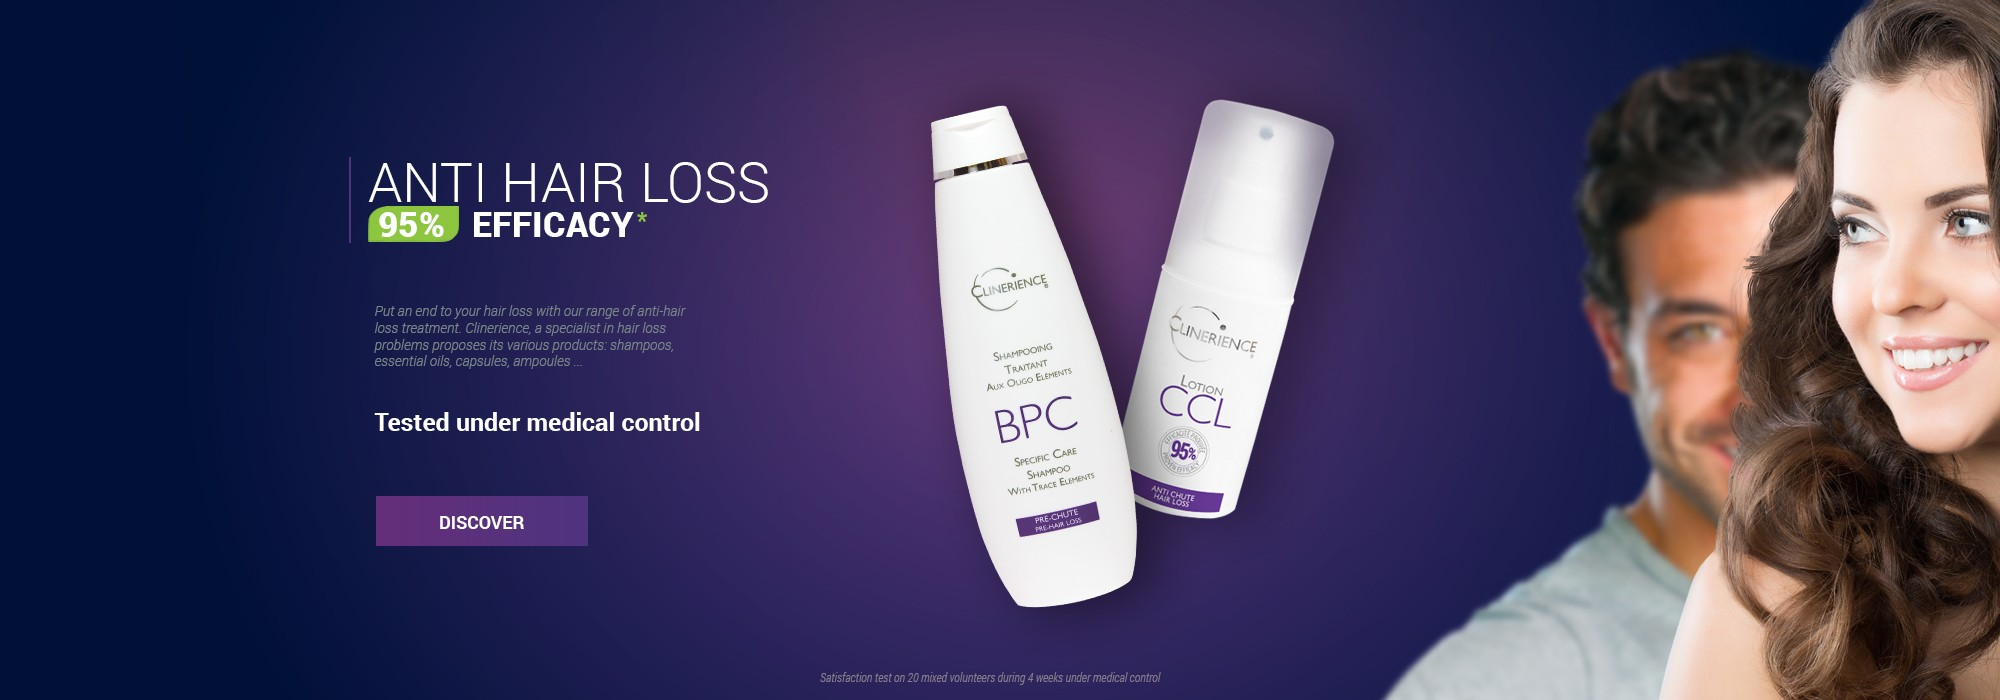 Anti Hair Loss